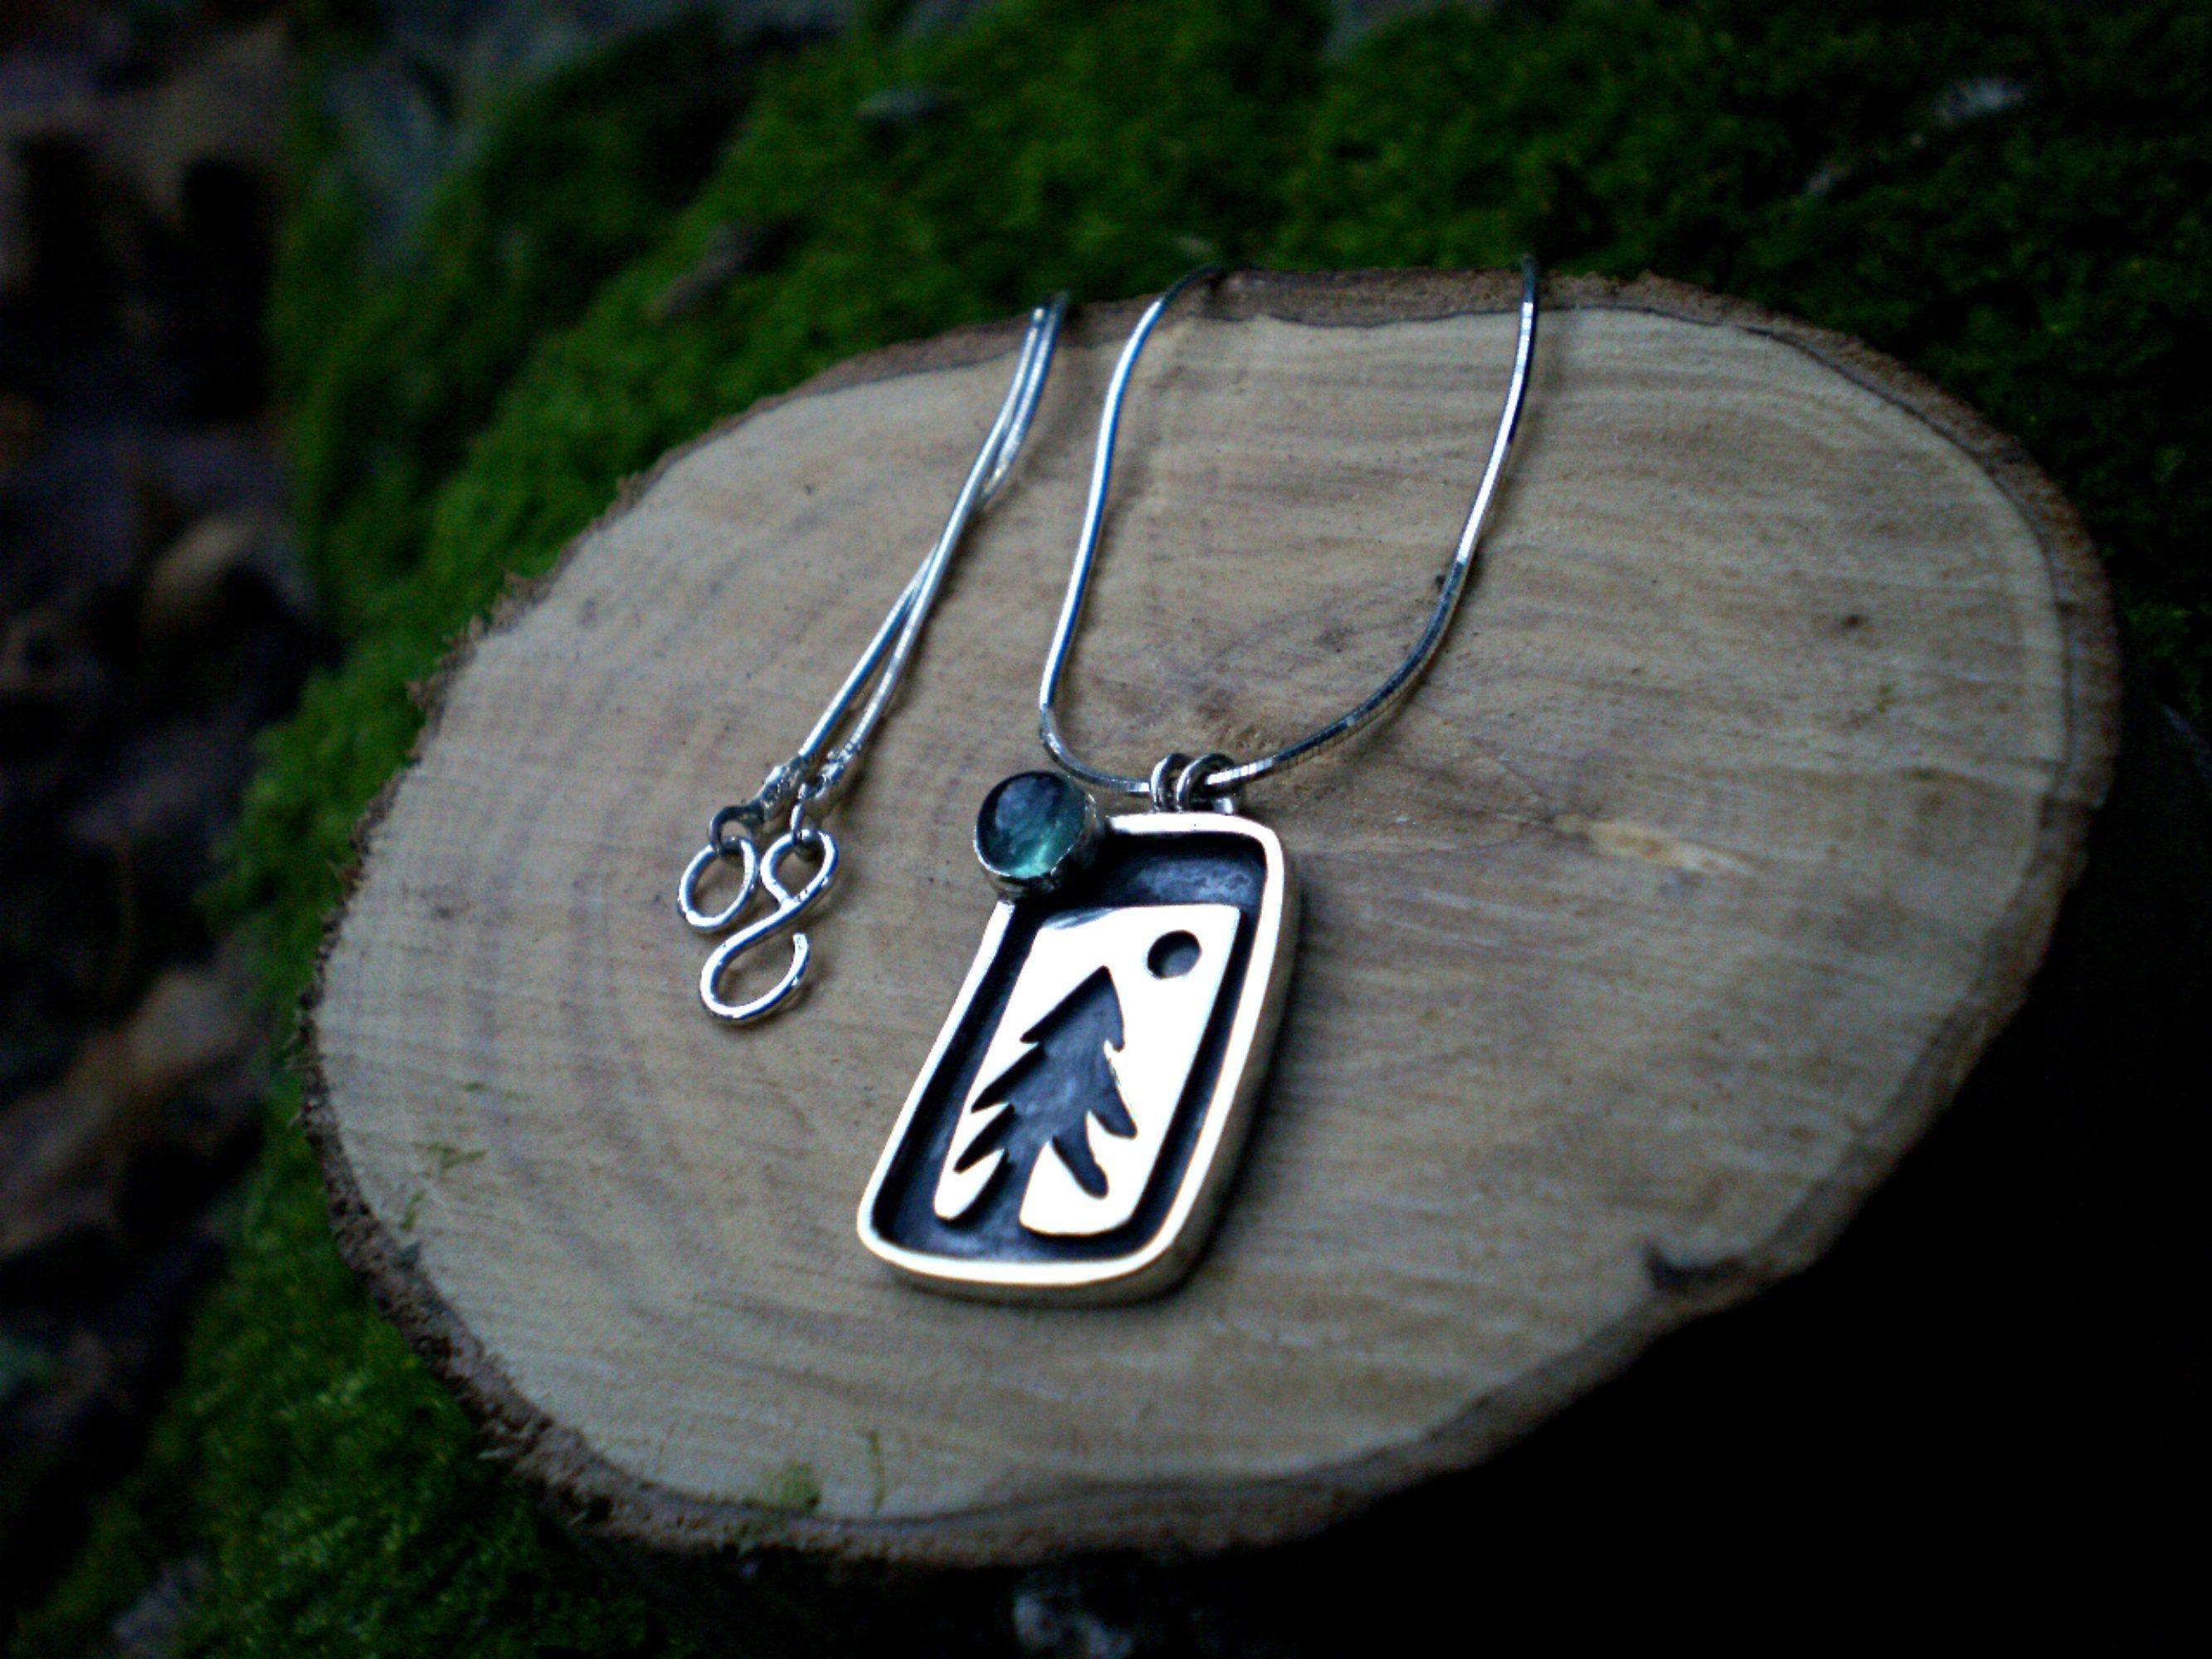 Oxidized silver pendant aztec style with gold eye